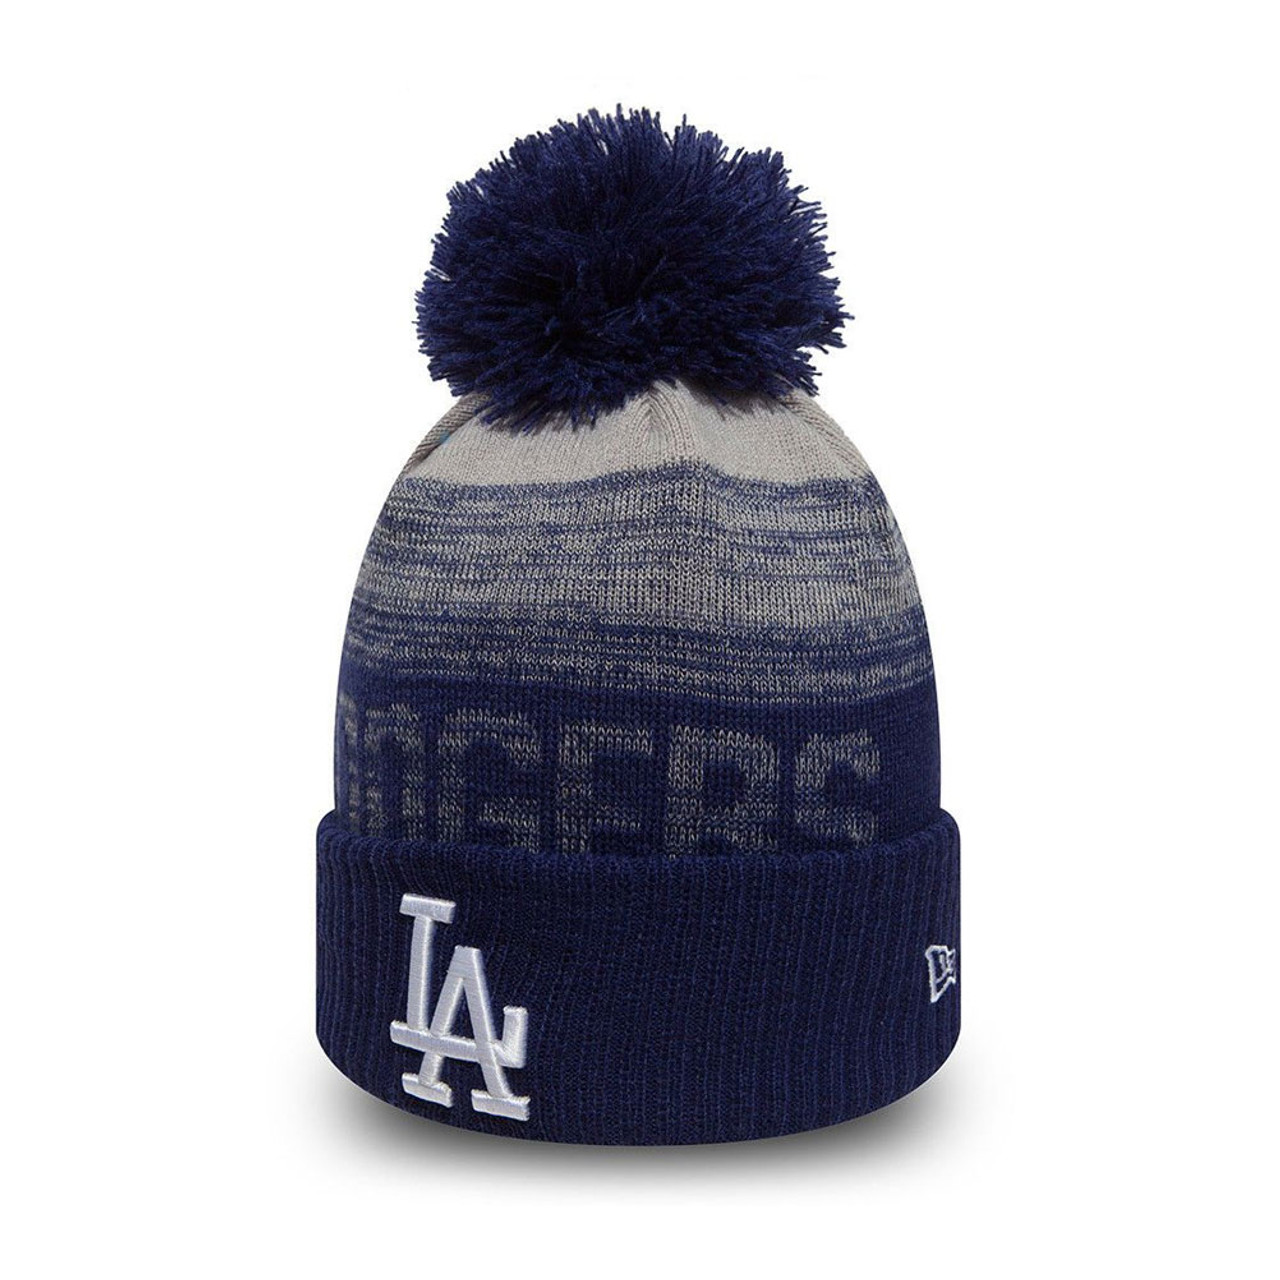 NEW ERA LA Dodgers Knit Bobble Hat Beanie  blue  42b41ac54888